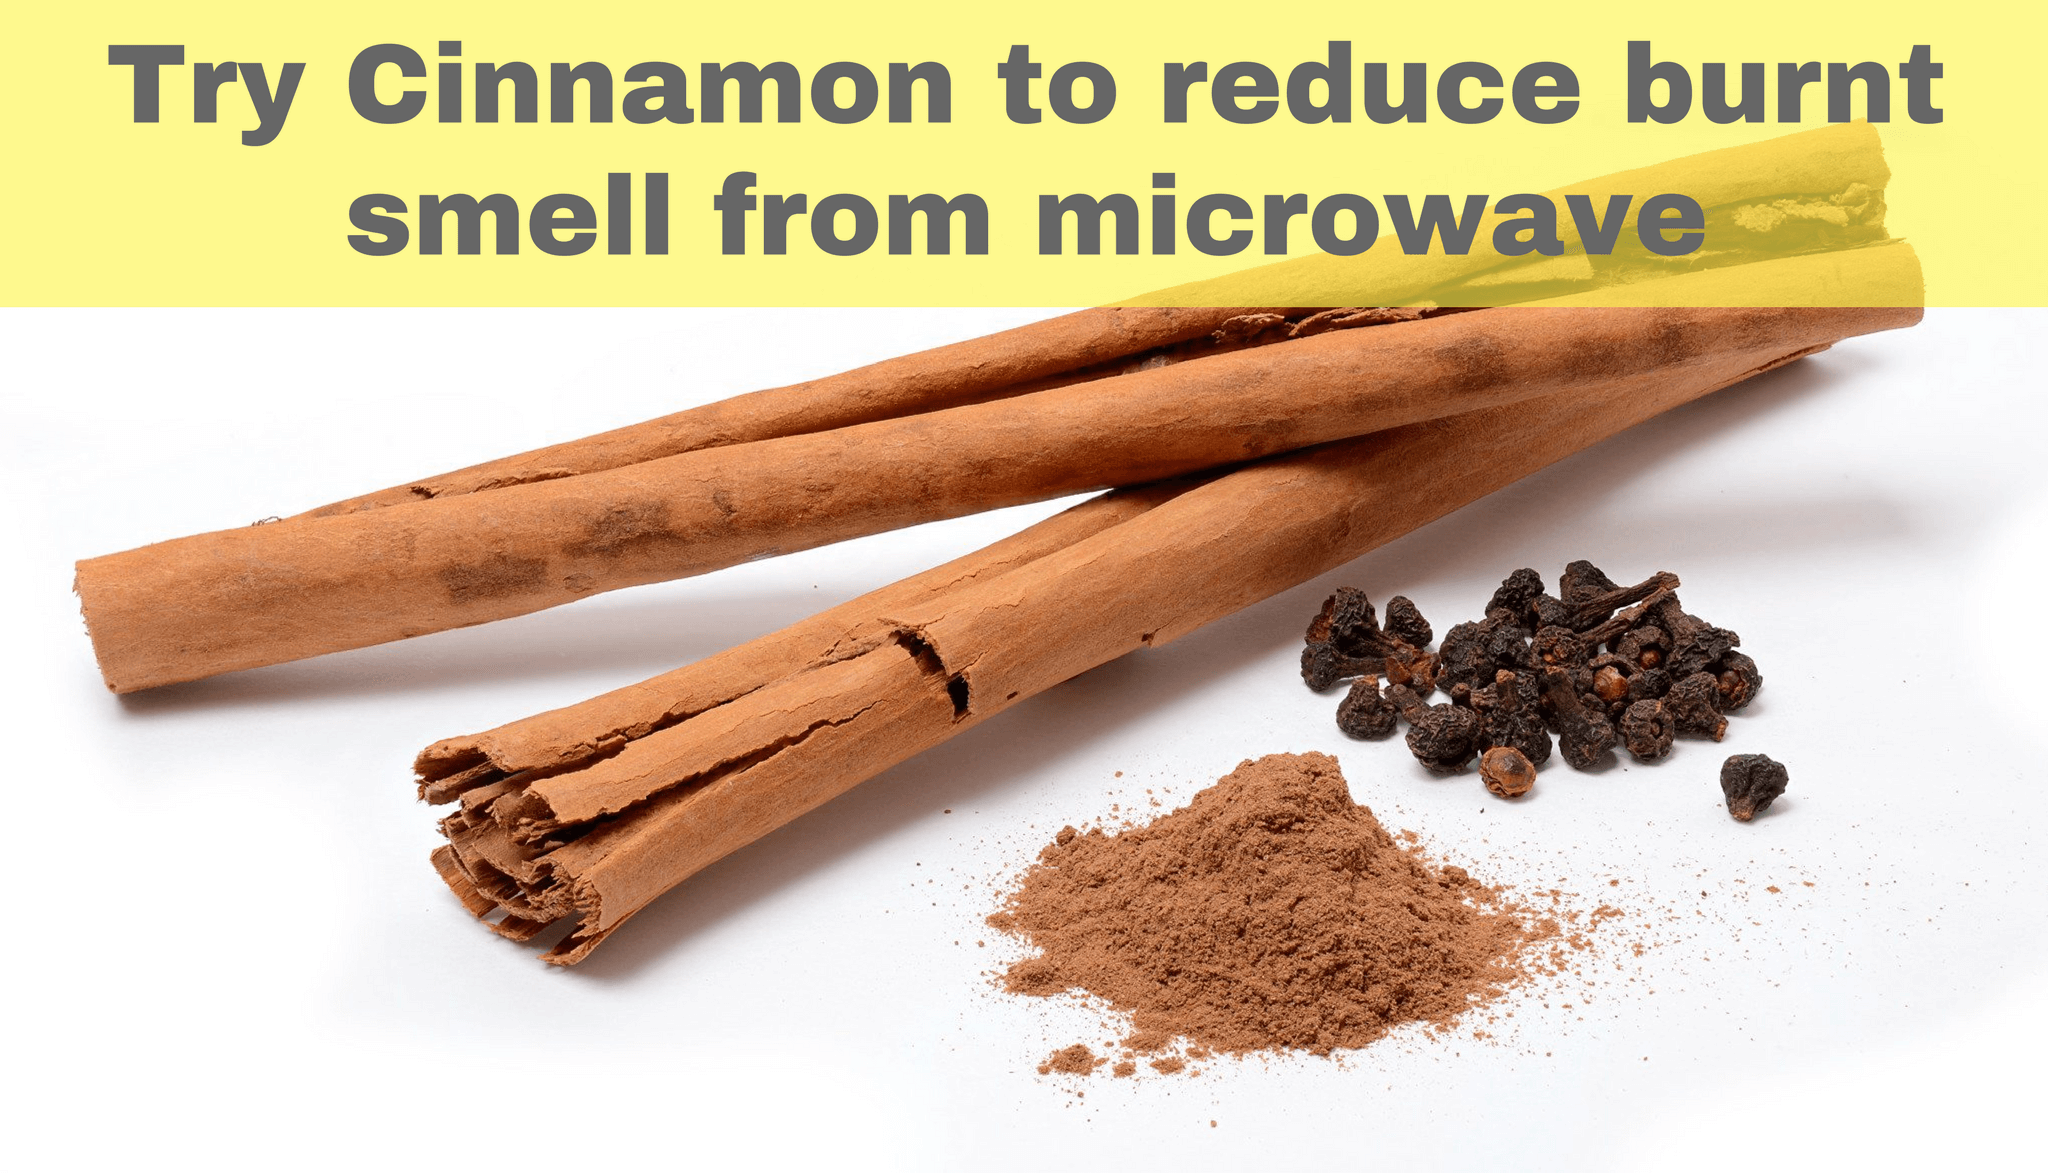 Try cinnamon to reduce burnt smell from microwave